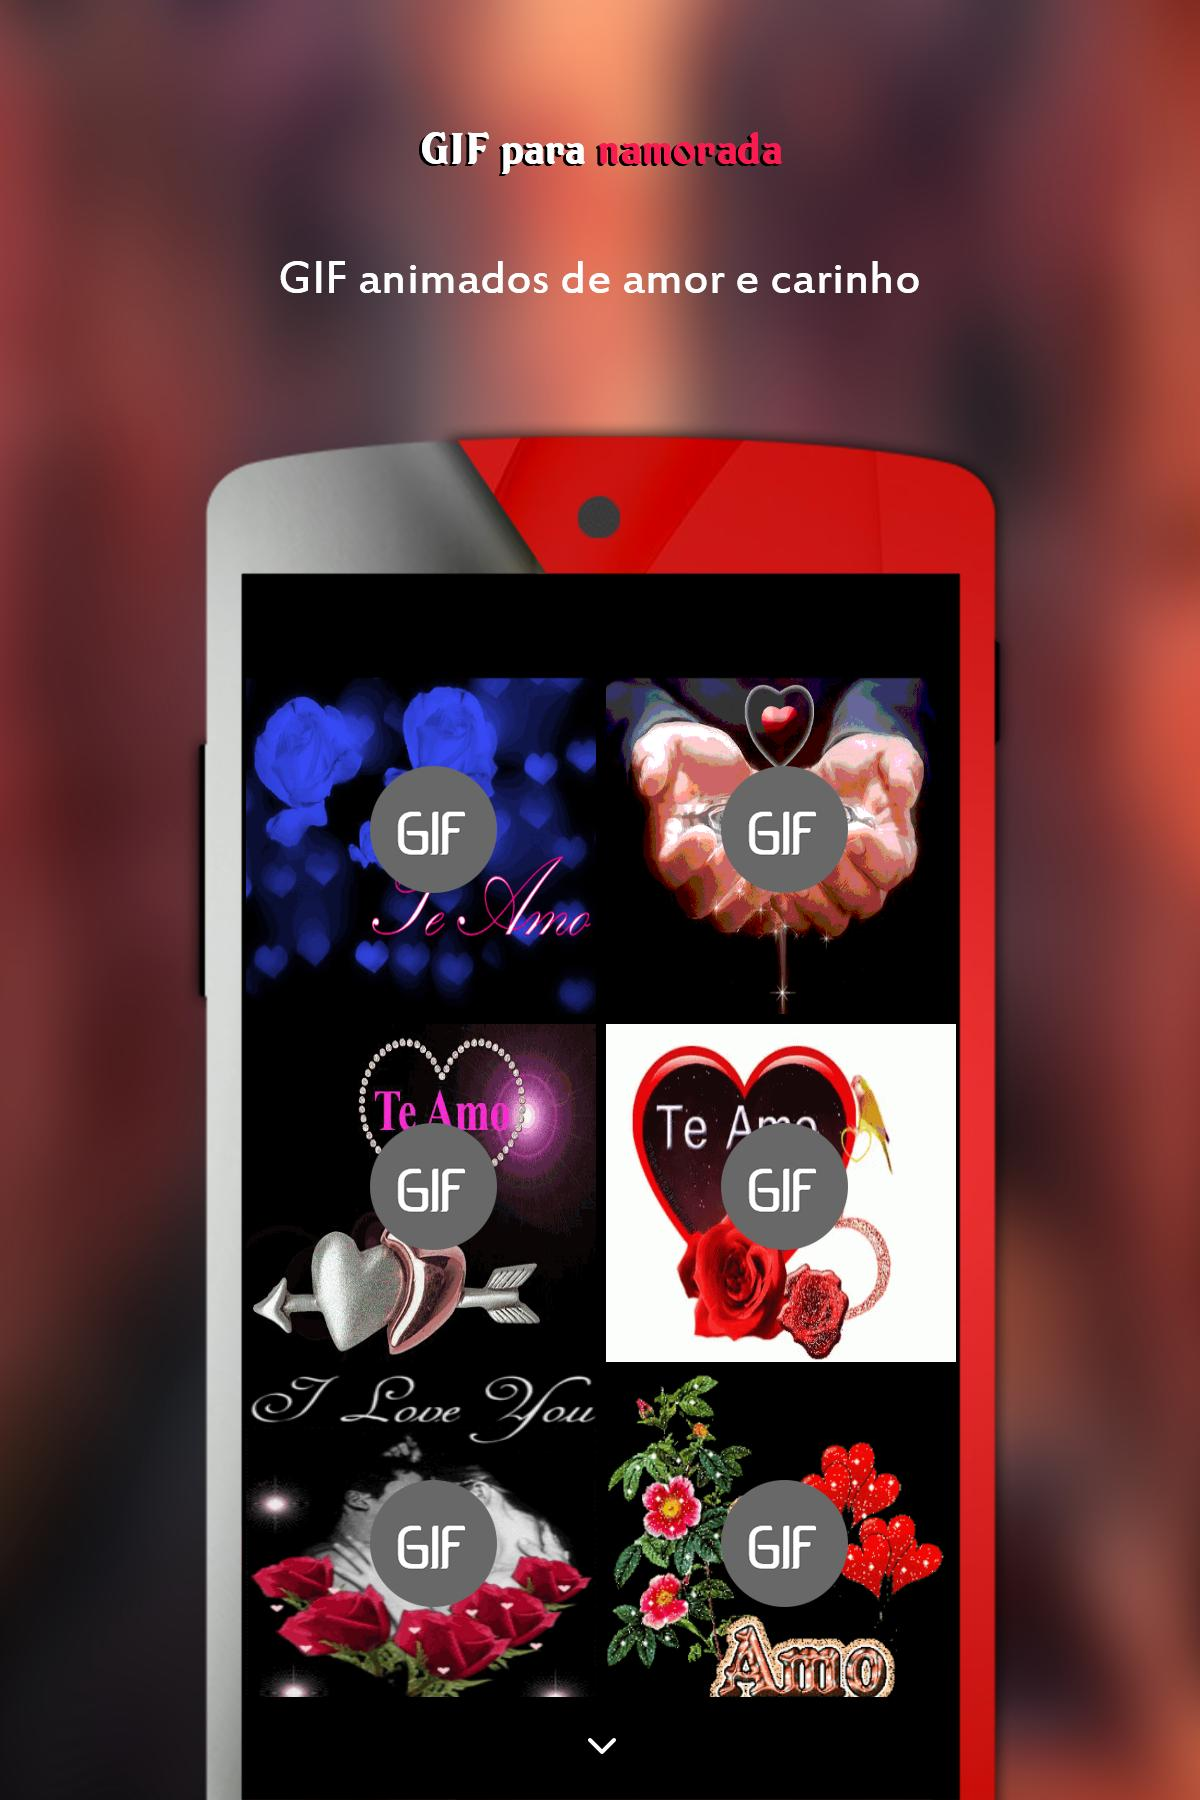 Frases De Amor Para Namorada For Android Apk Download